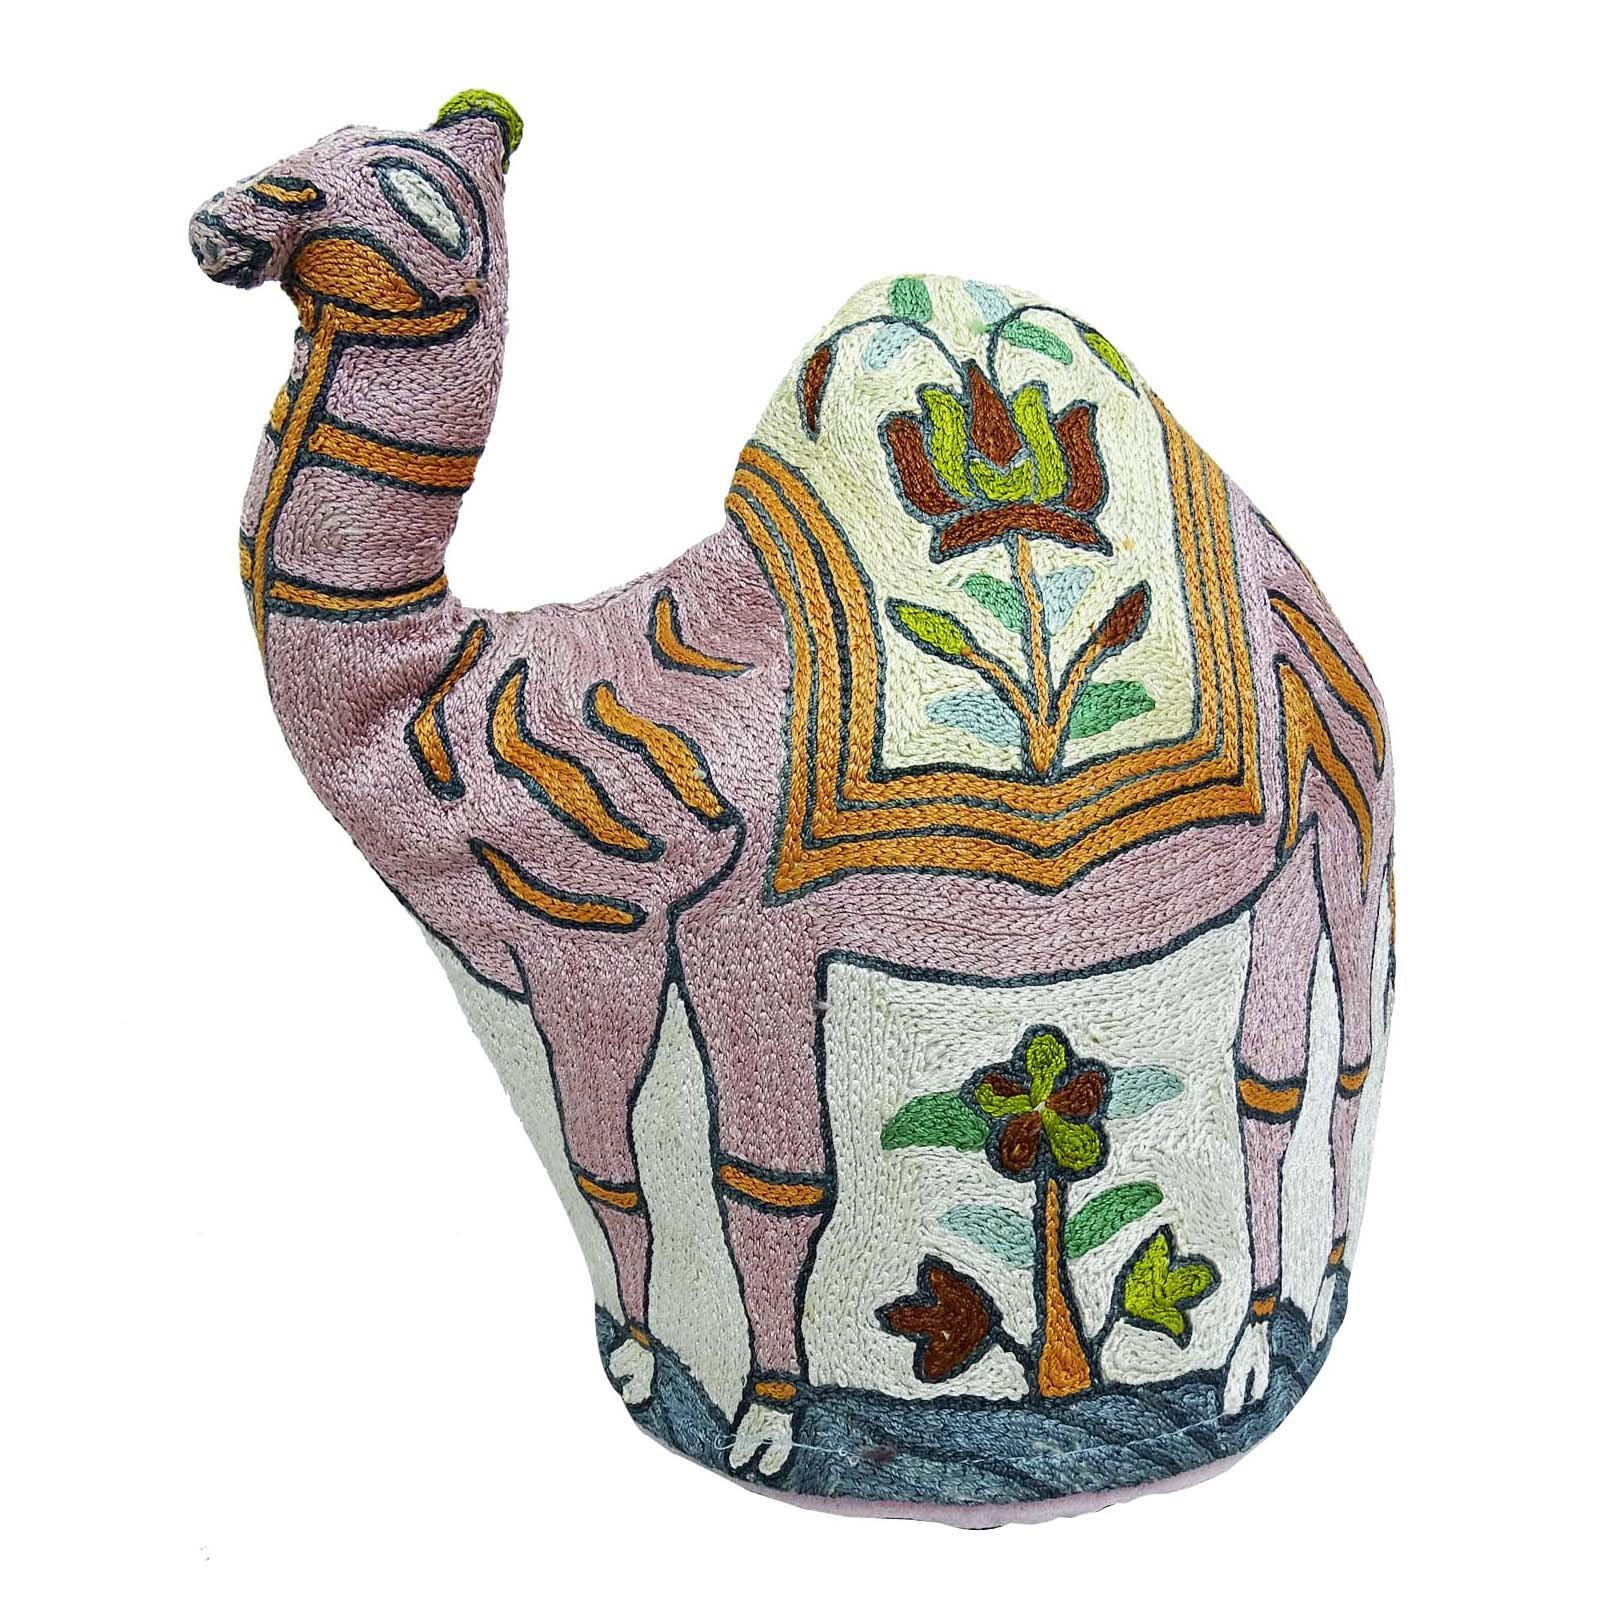 Indian Camel Design Kettle Cover Kashmiri Embroidery Quilted Tea Cover Gift by ibaexports